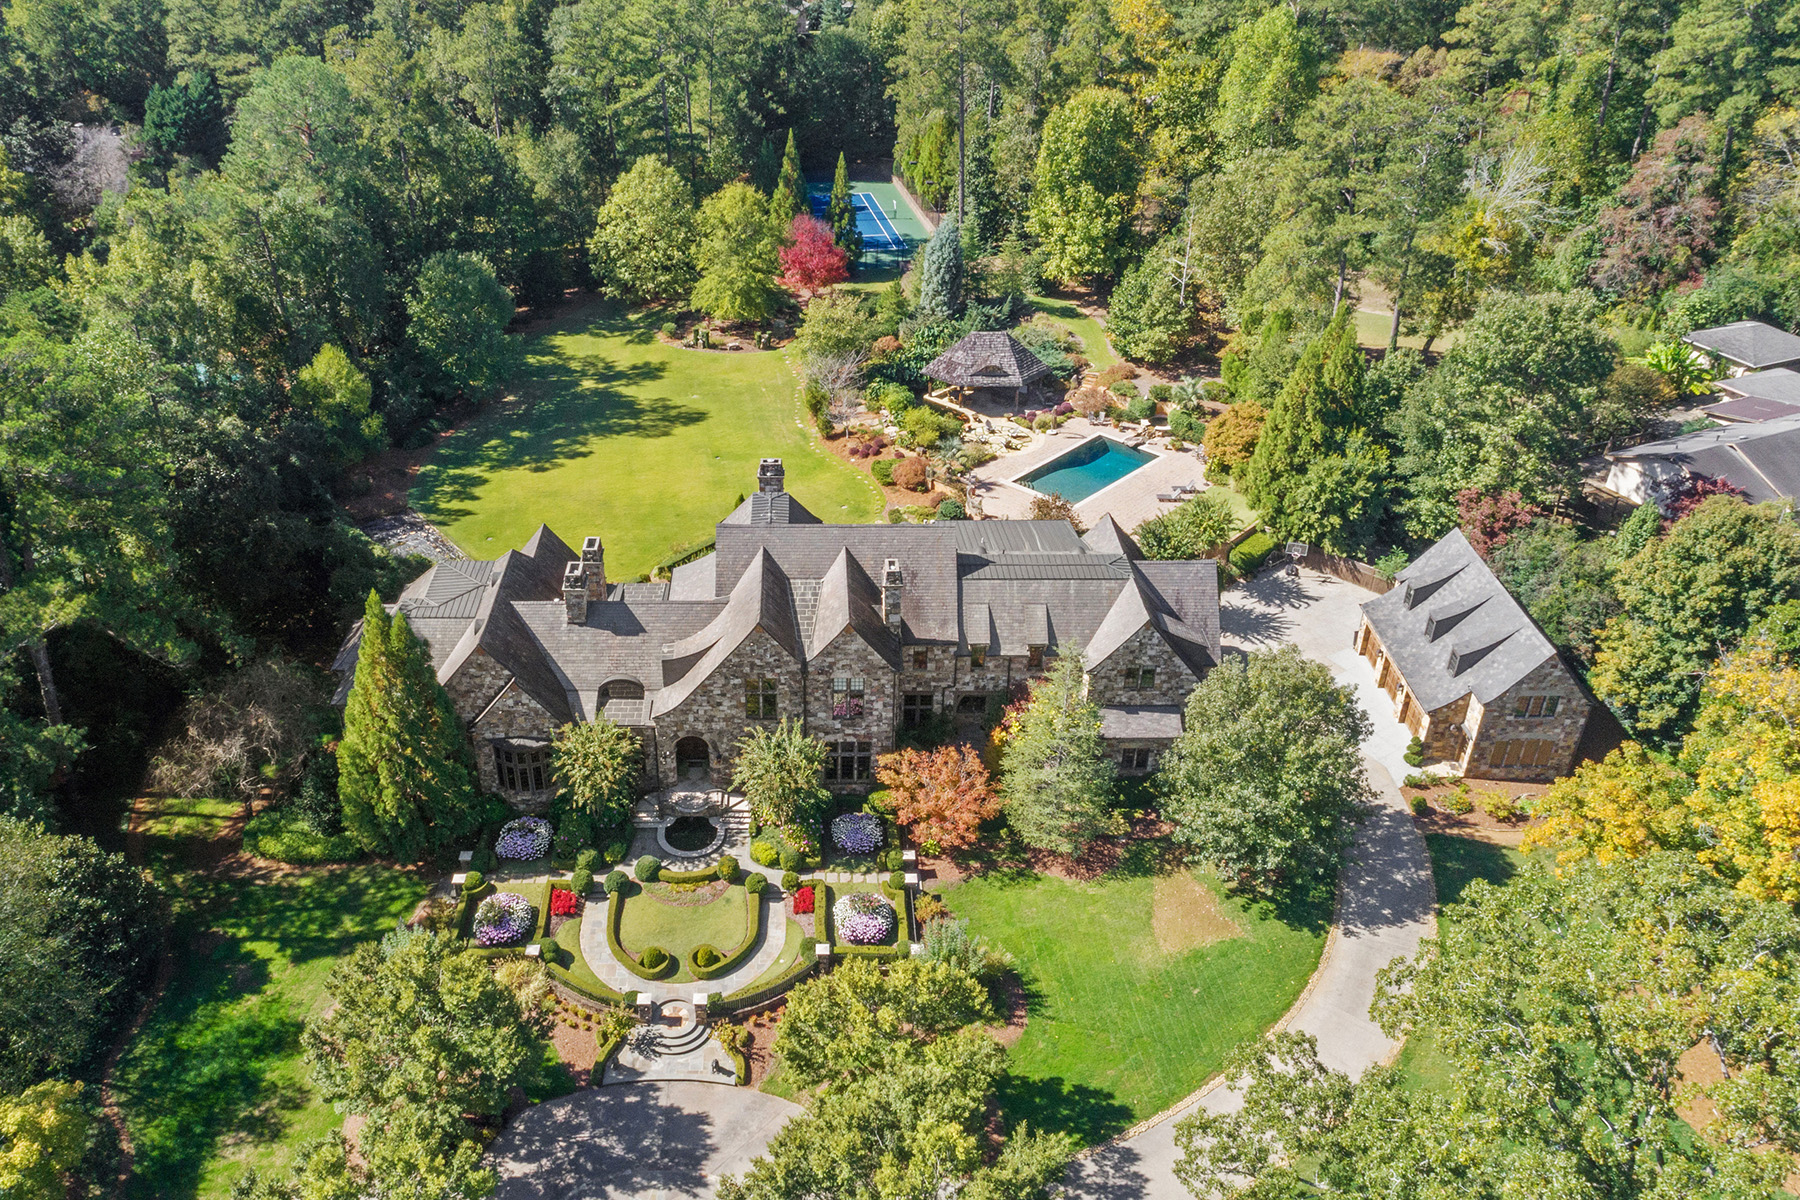 Single Family Homes for Sale at Spectacular Gated Estate Beautifully Perched On 4.2 Perfectly Flat Acres 6184 Riverside Drive Atlanta, Georgia 30328 United States